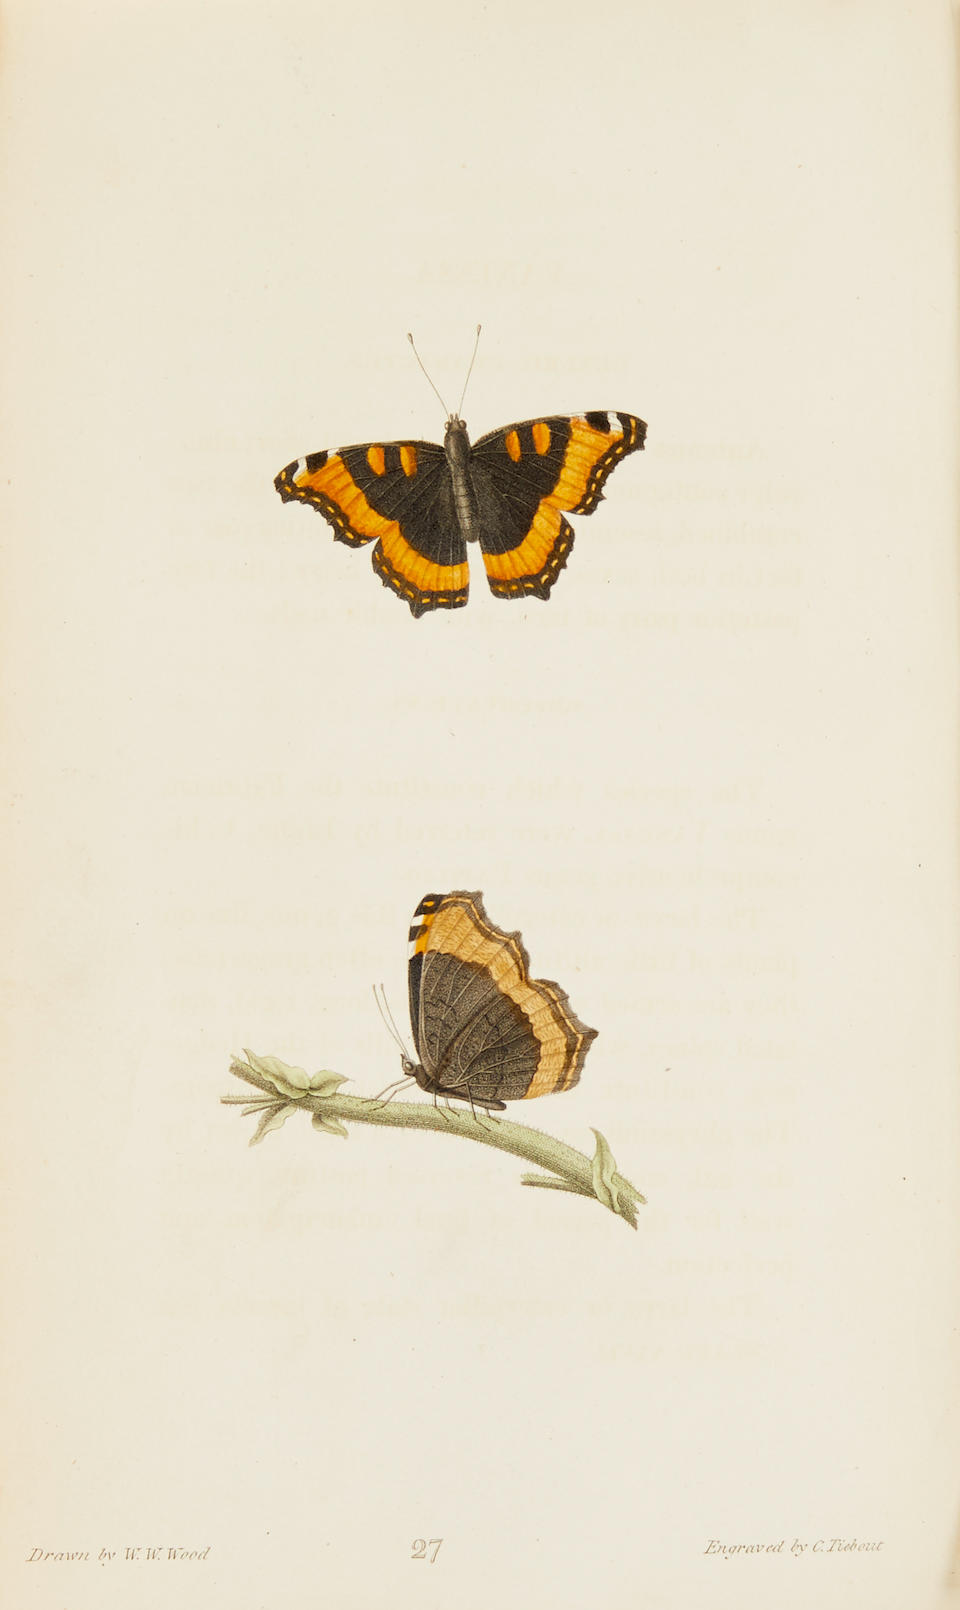 SAY, THOMAS. 1787-1834. American Entomology, or descriptions of the insects of North America. Philadelphia: Samuel Augustus Mitchell, 1824-1828.